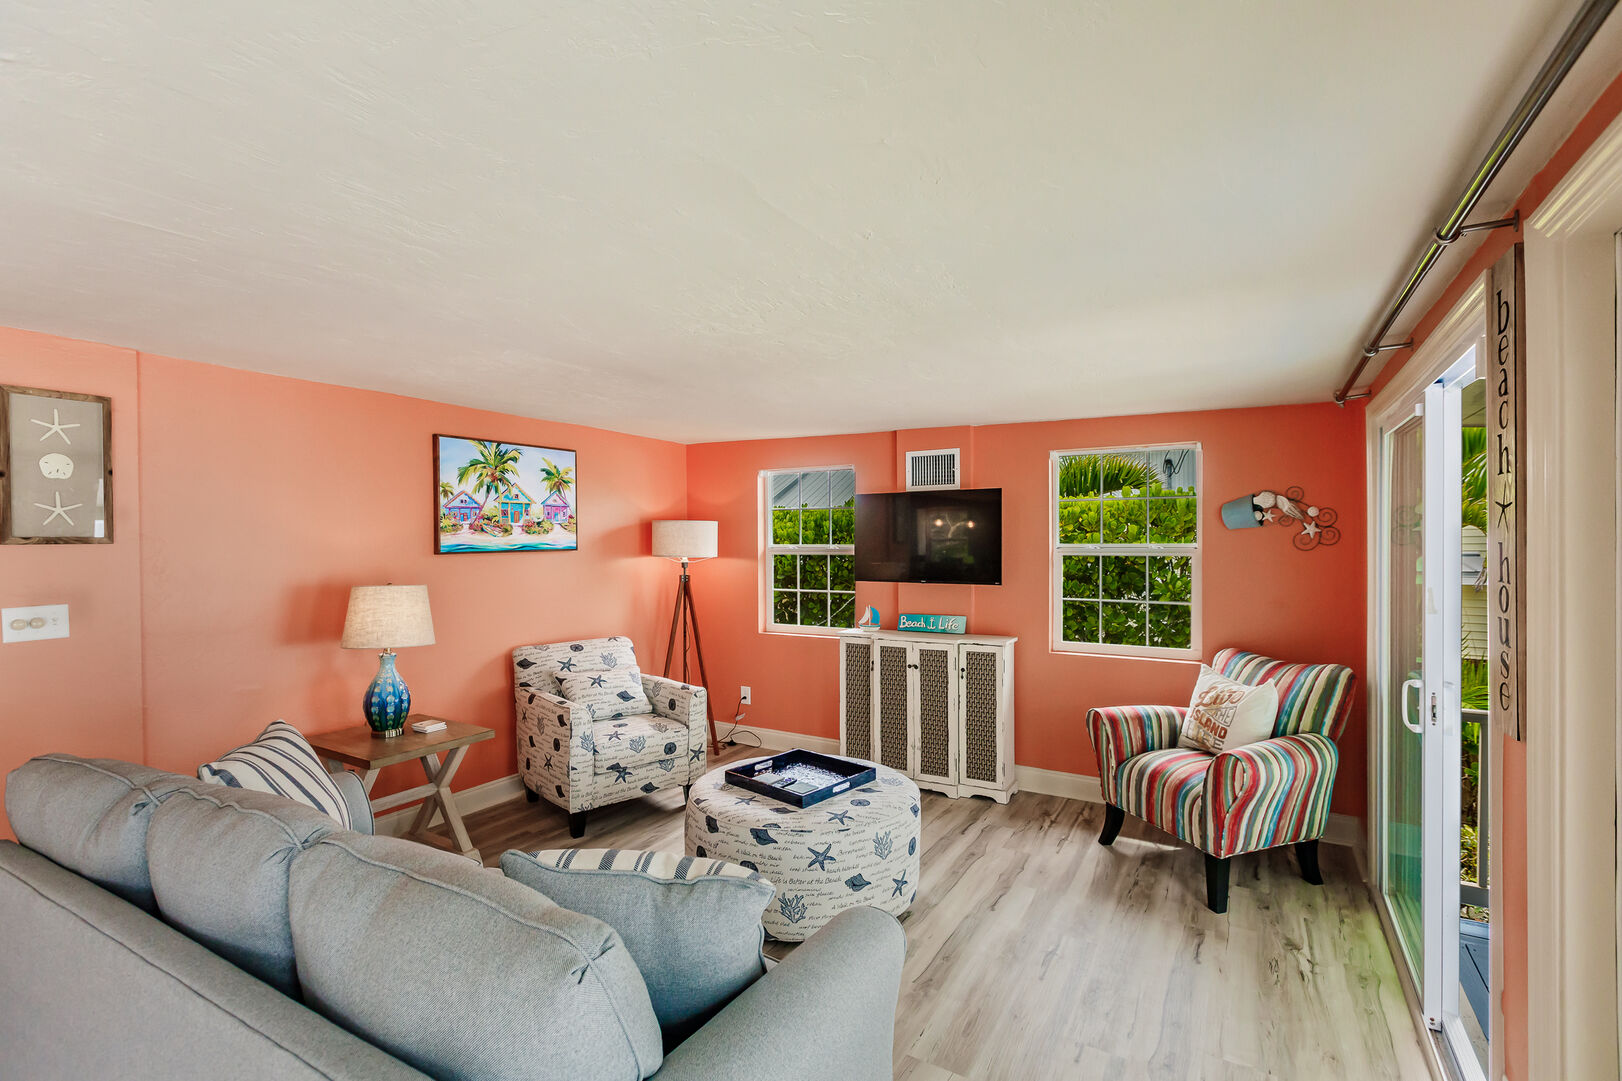 Private Beach House Rental in Florida Livingroom and Coral Paint